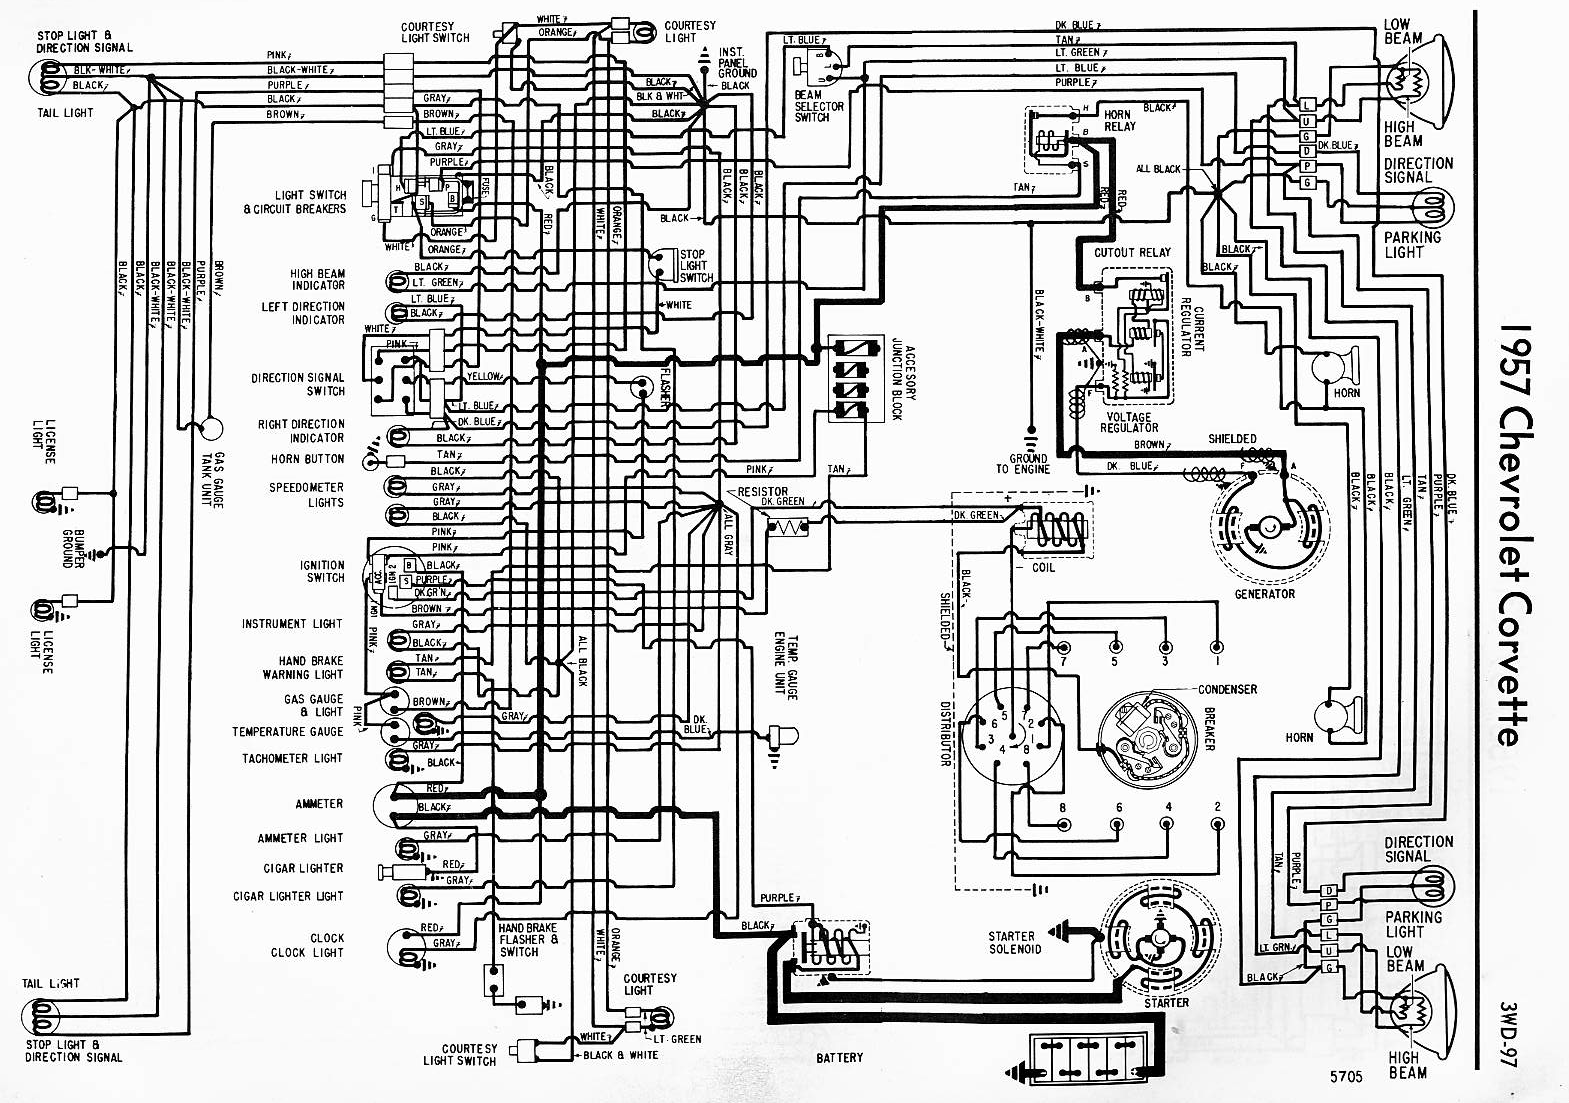 1981 Corvette Wiring Schematic - wiring diagram cycle-total -  cycle-total.hoteloctavia.it | 1981 Corvette Headlight Wiring Diagram |  | hoteloctavia.it